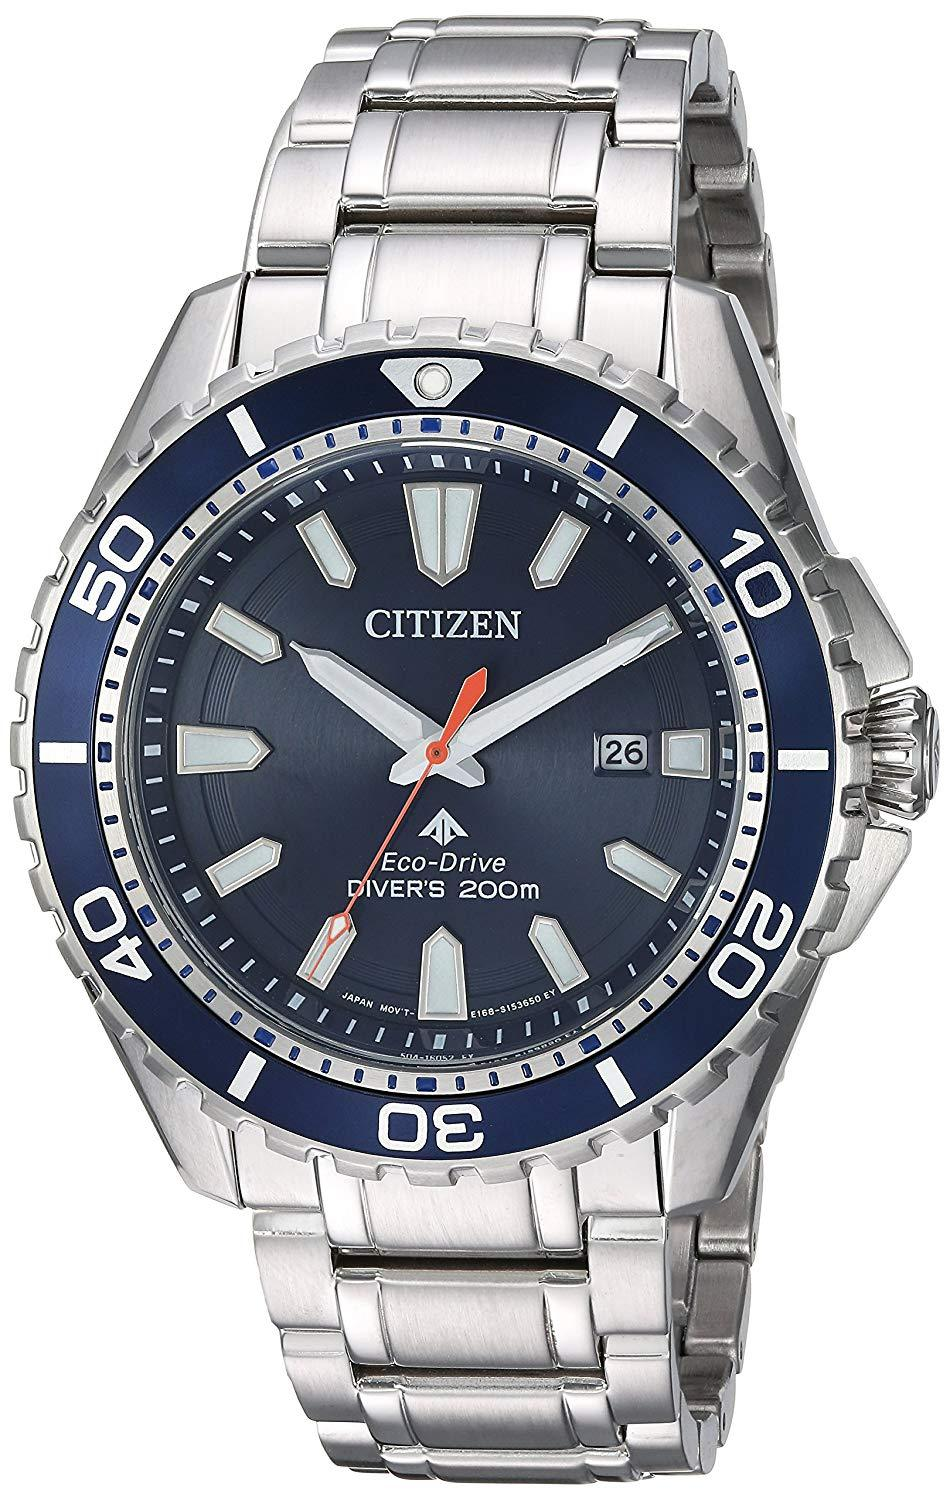 Citizen Men's Eco-Drive Stainless Steel Divers 200 m Watch BN0191-55L